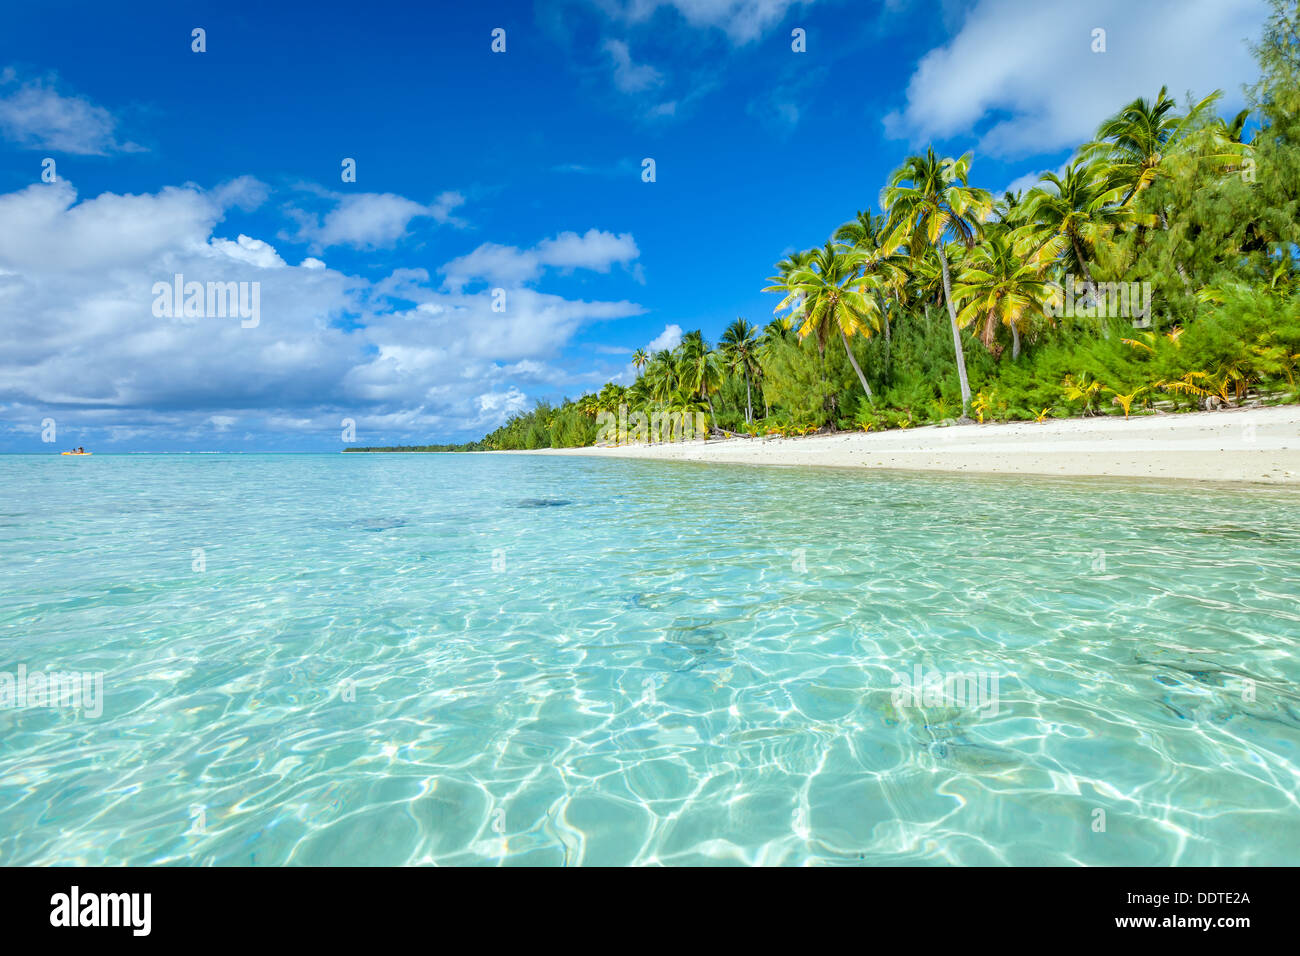 COOK ISLANDS, Aitutaki island, tropical sandy white beach with turquoise water and palm trees - Amuri beach, South Pacific - Stock Image